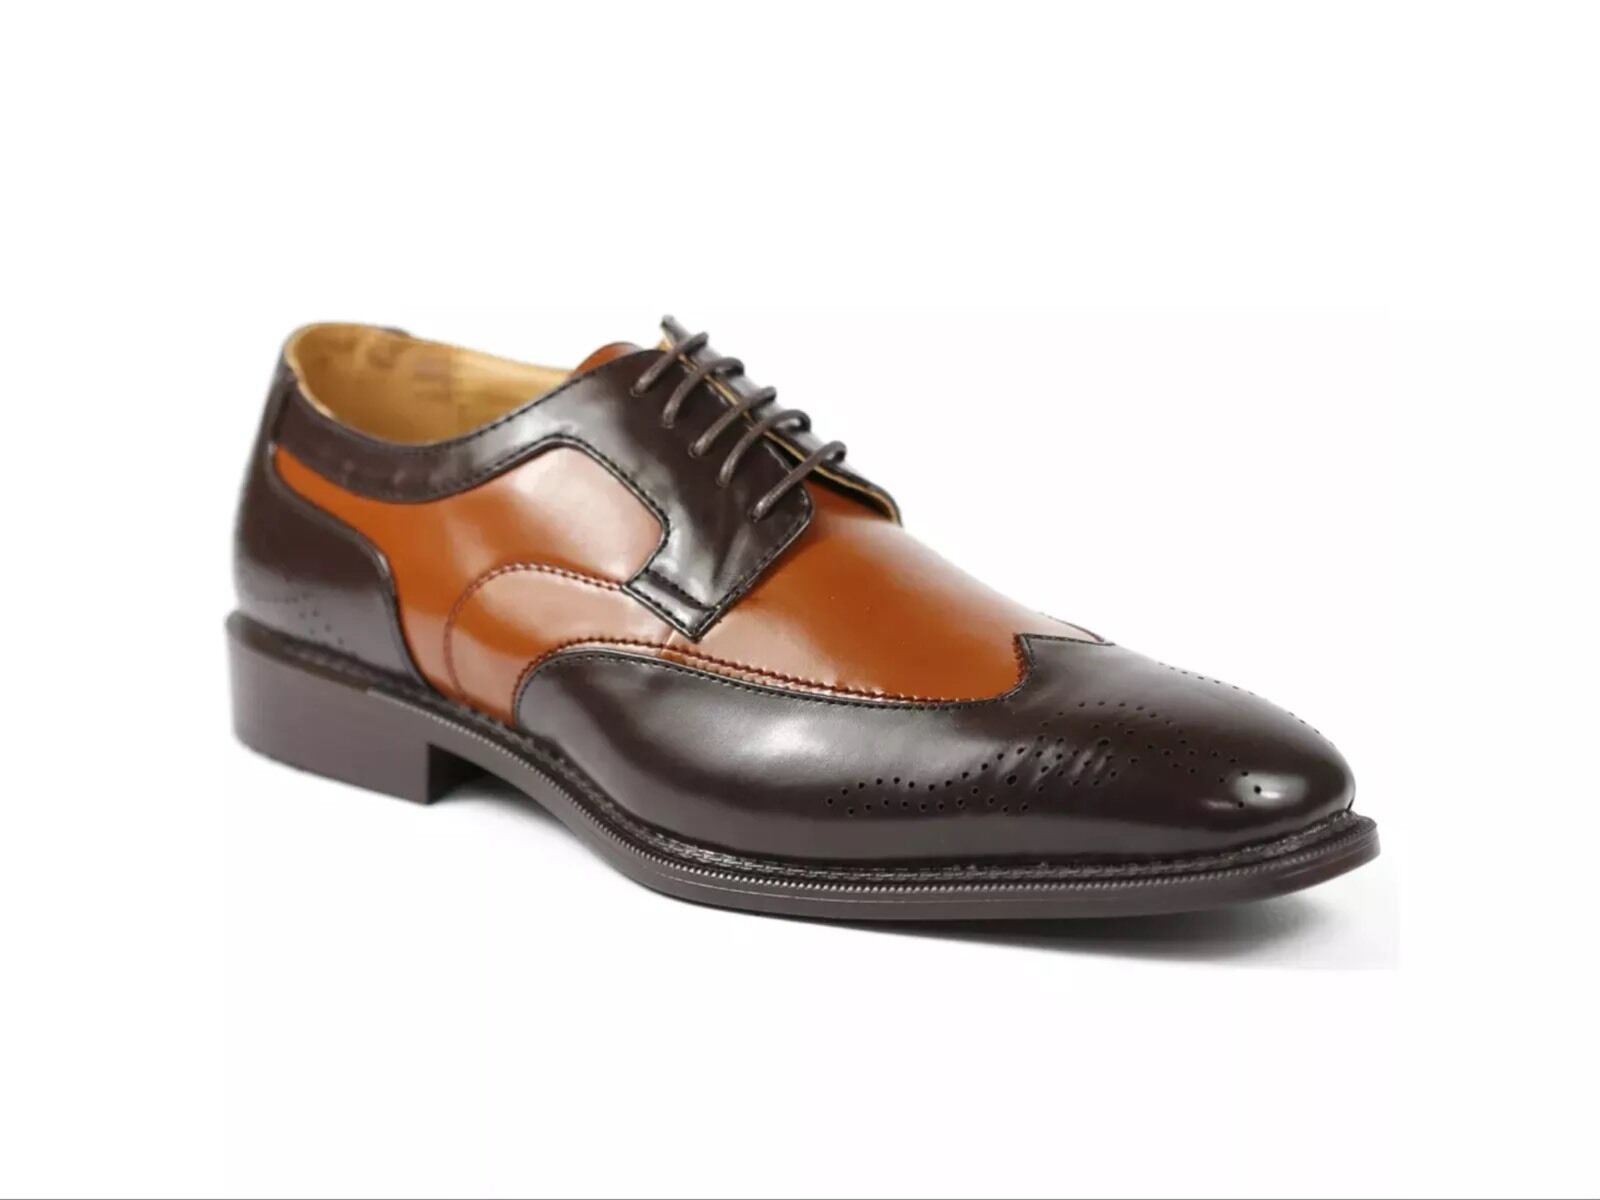 Men's Dress shoes Bolano,wingtip,Oxford smooth,Brown Cognac new with Box